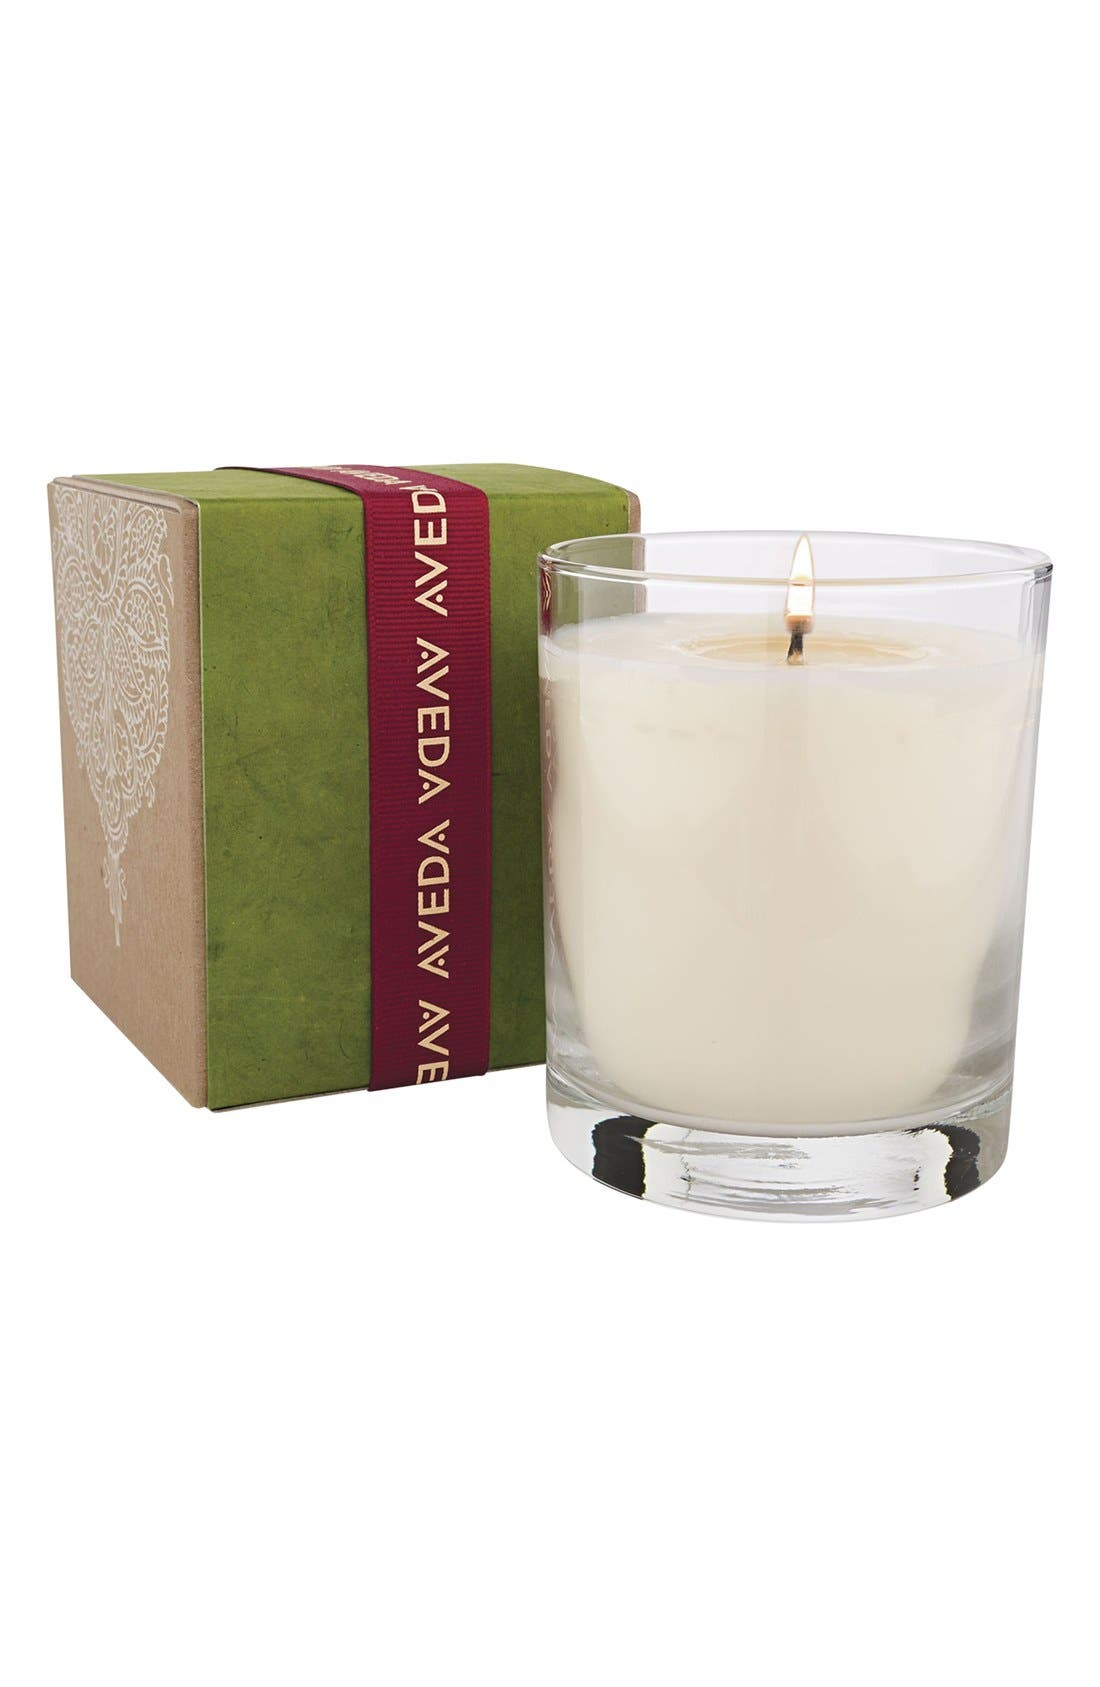 Main Image - Aveda 'Give Warmth' Candle